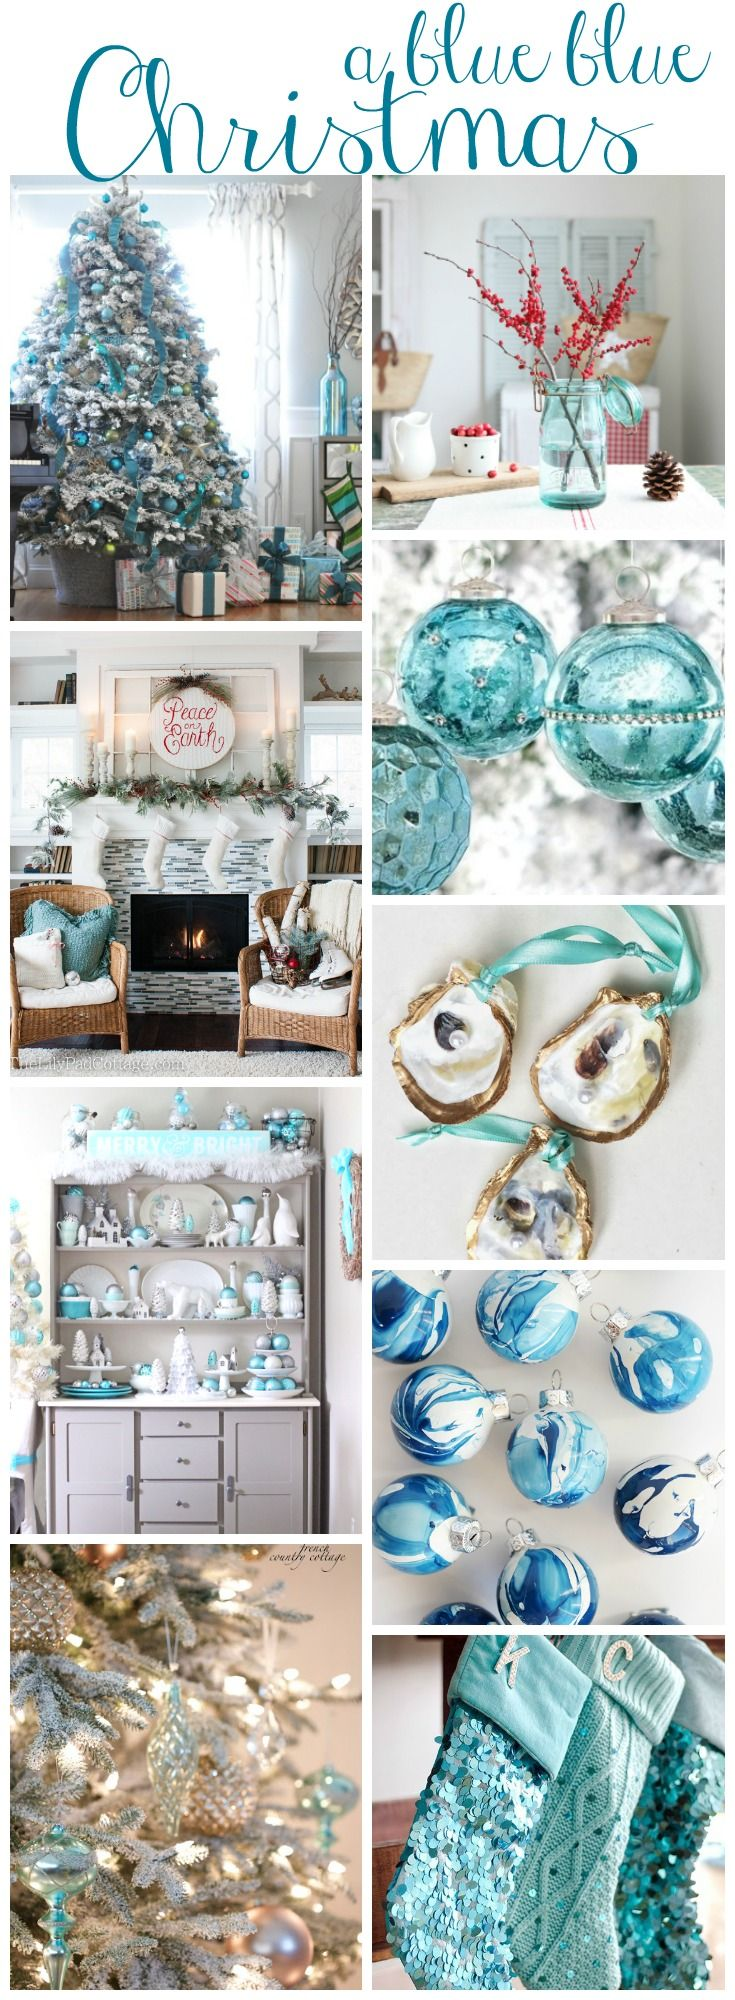 a-blue-blue-christmas-style-series-decor-diy-and-blue-christmas-inspiration